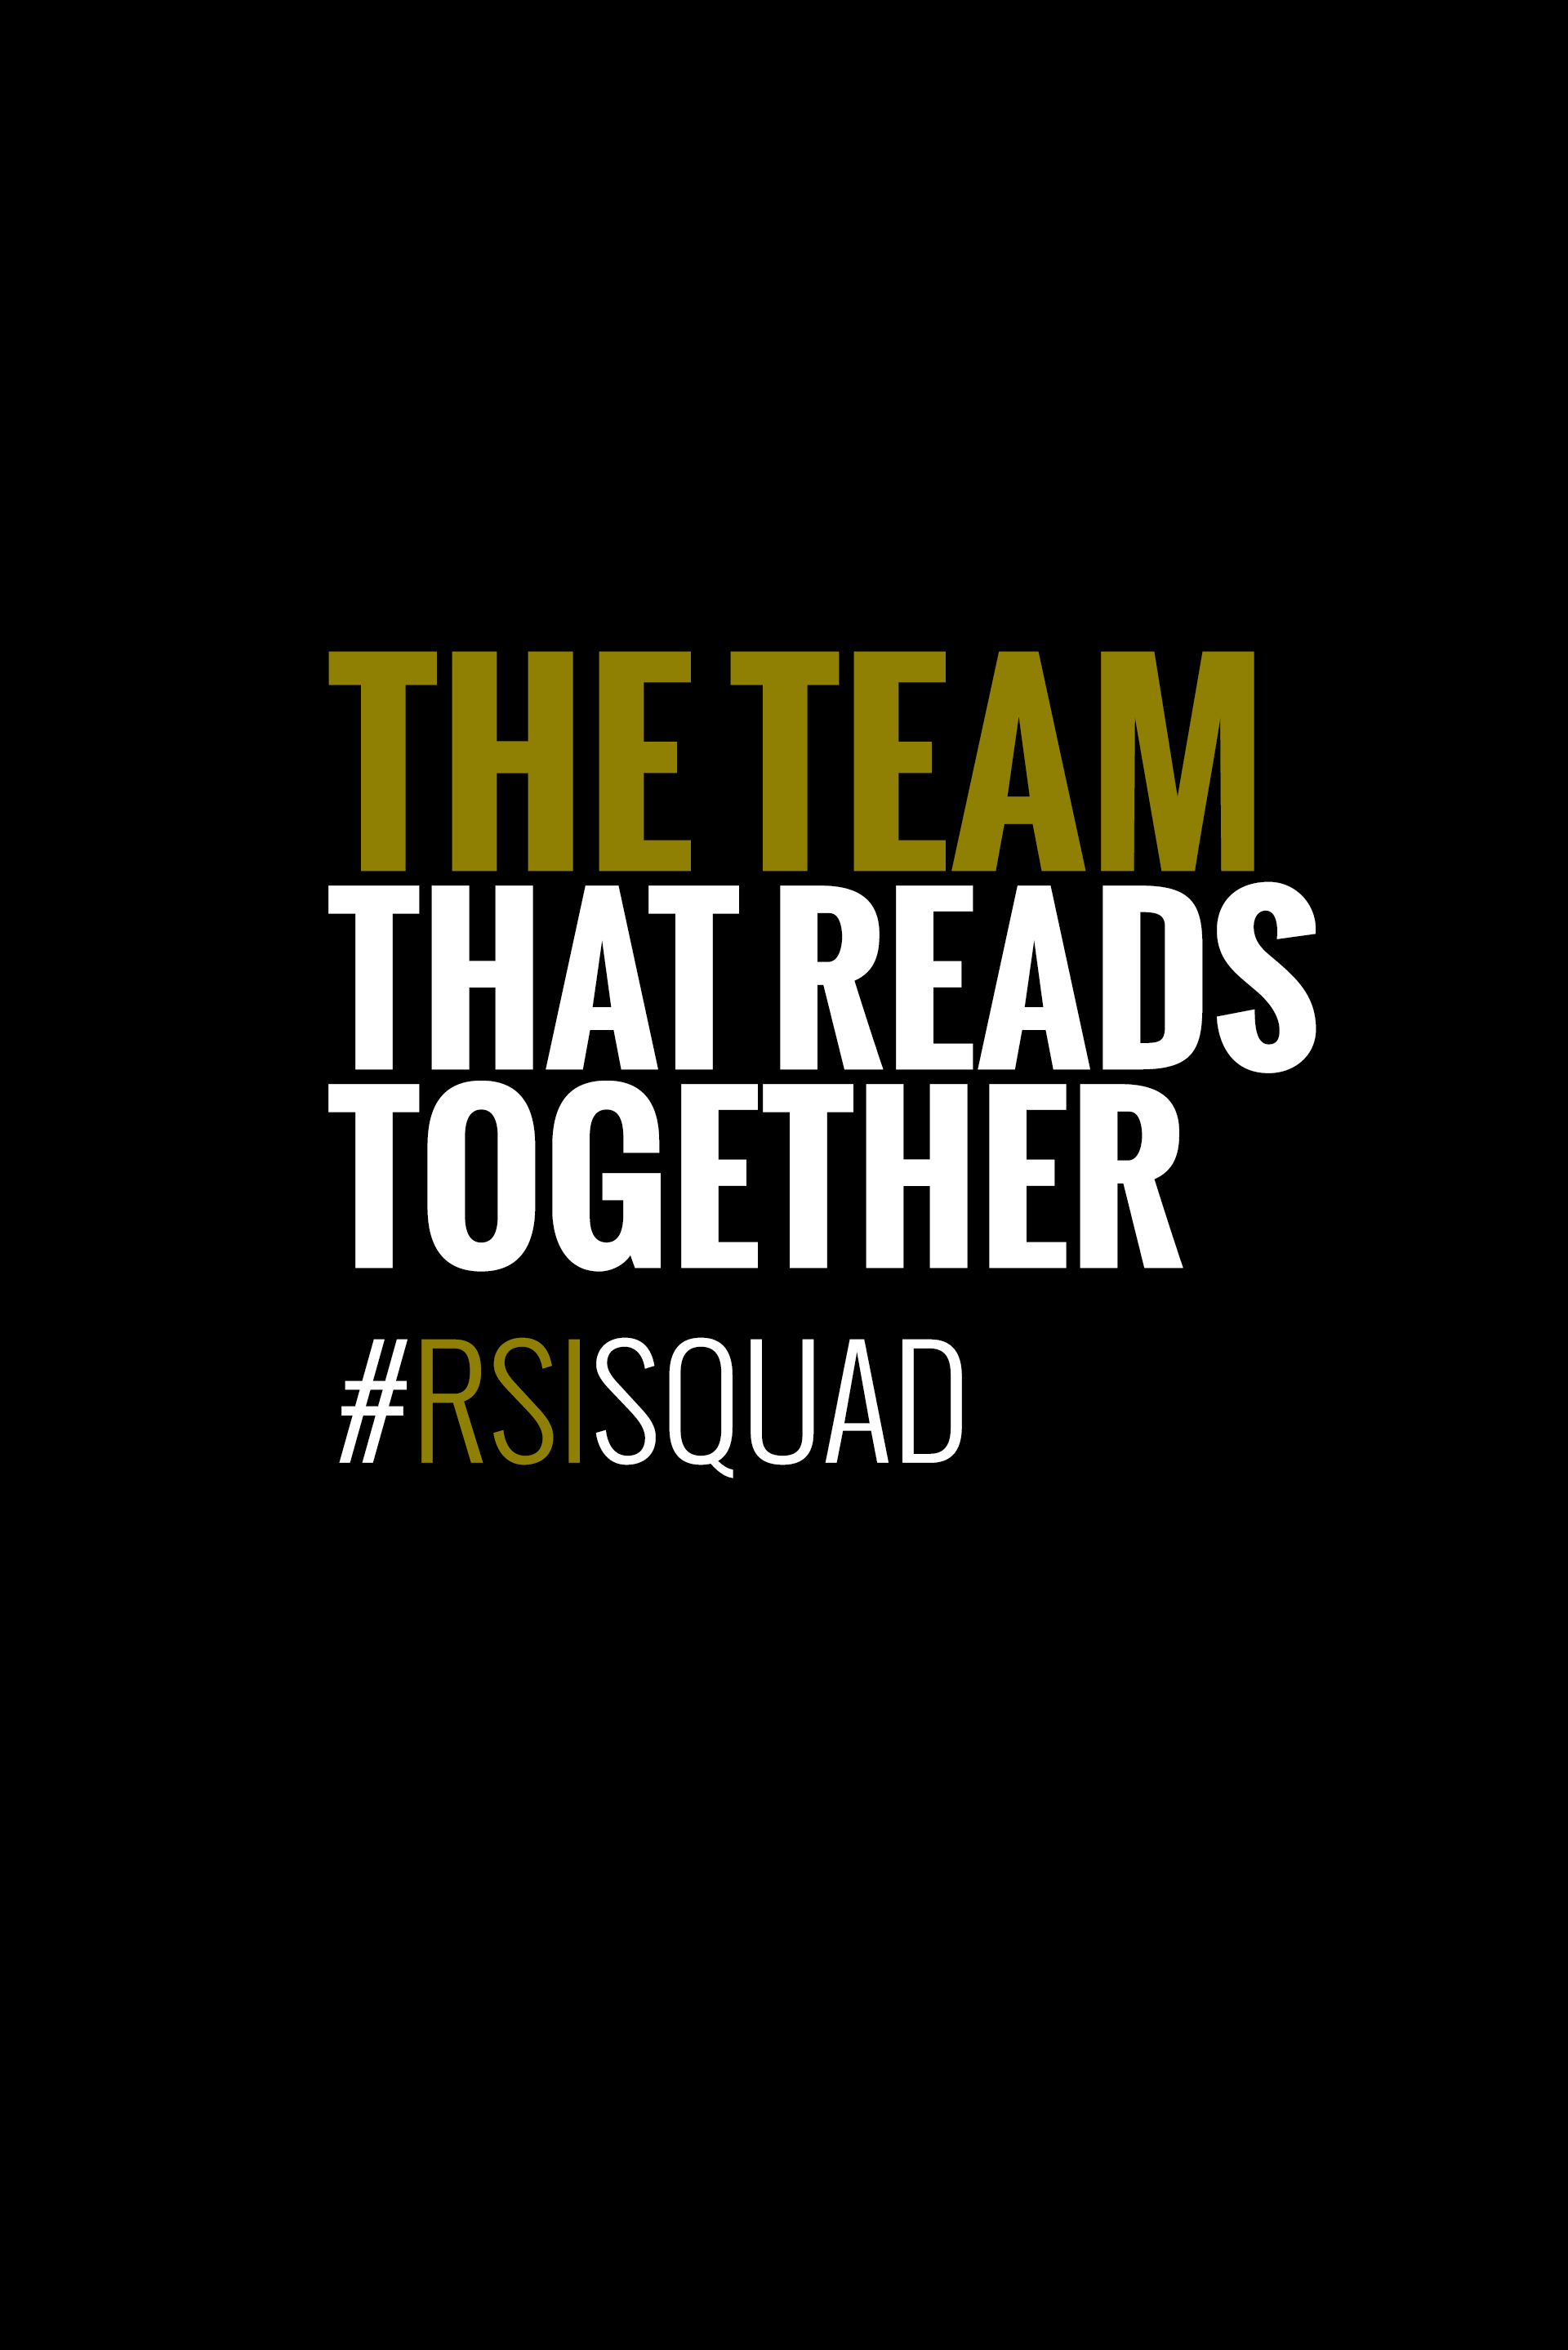 The Team That Reads Together